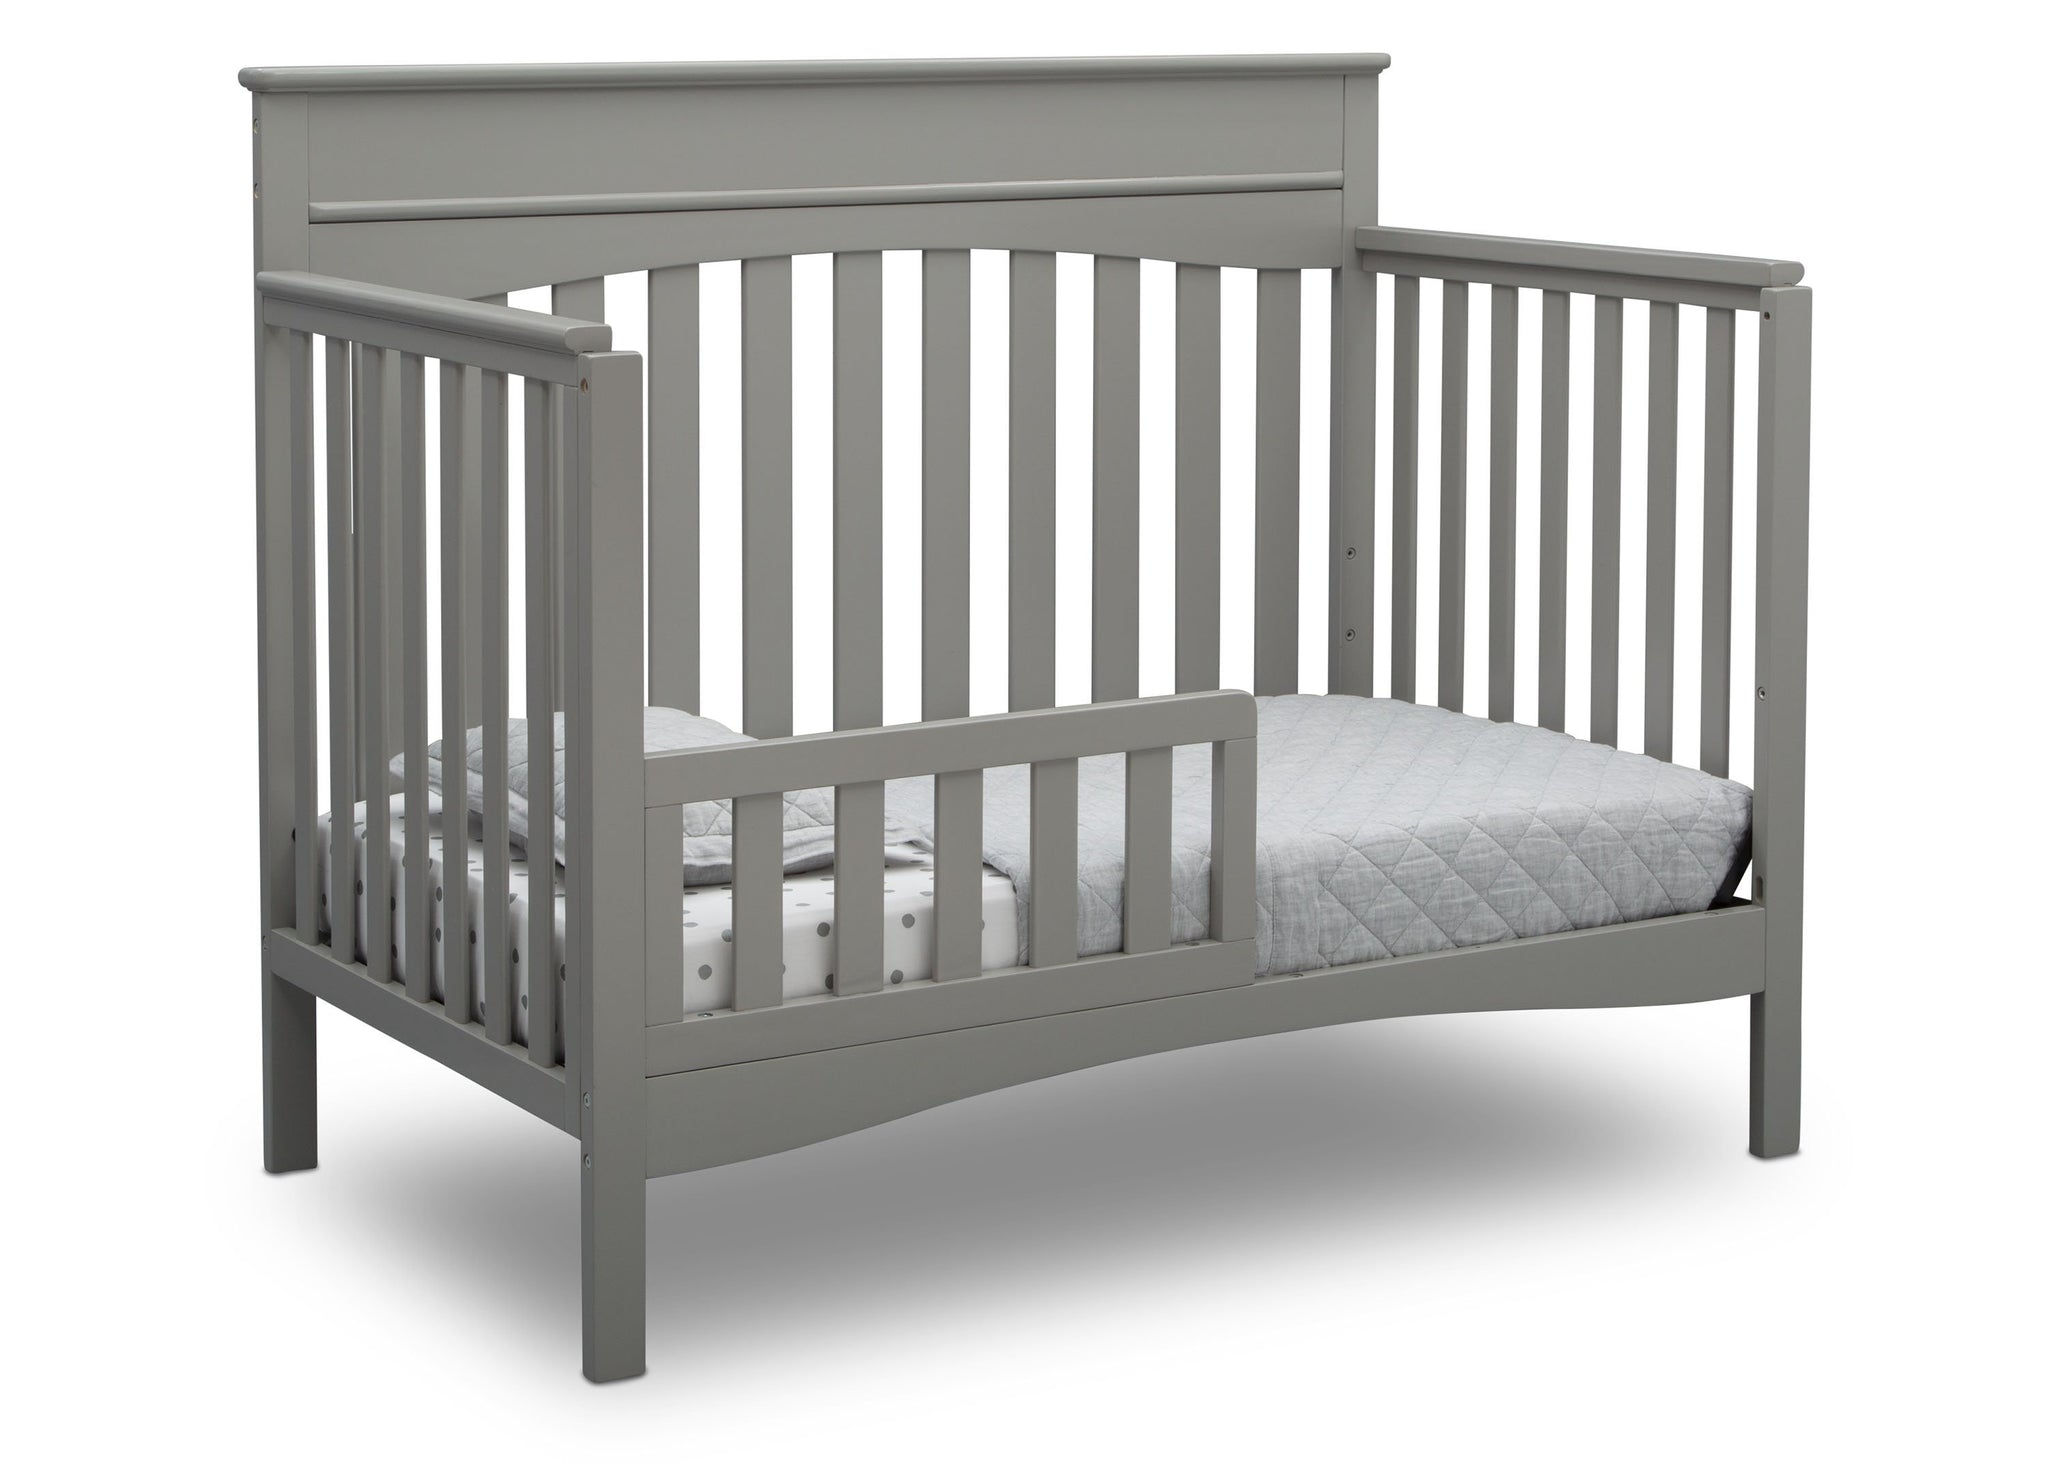 Delta Children Grey (026) Skylar 4-in-1 Convertible Crib (558150), Toddler Bed, b4b